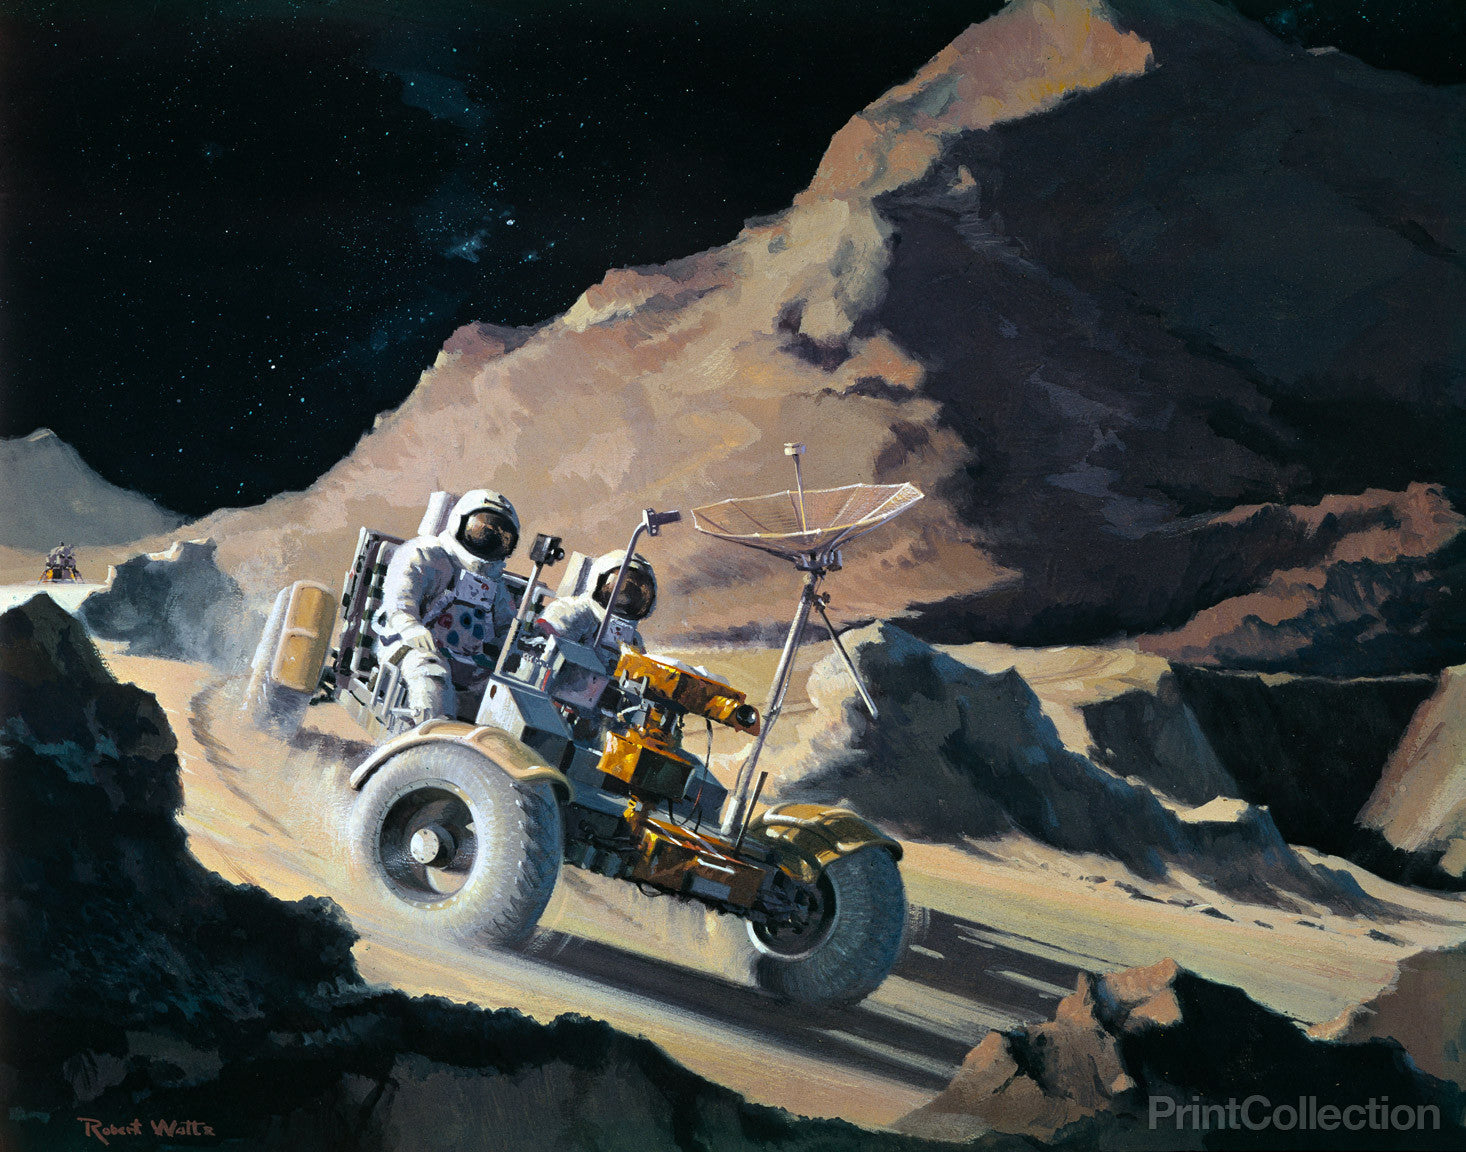 Space NASA Apollo 17 Lunar Rover Vehicle Moon Photo Large Wall Art Print 18X24